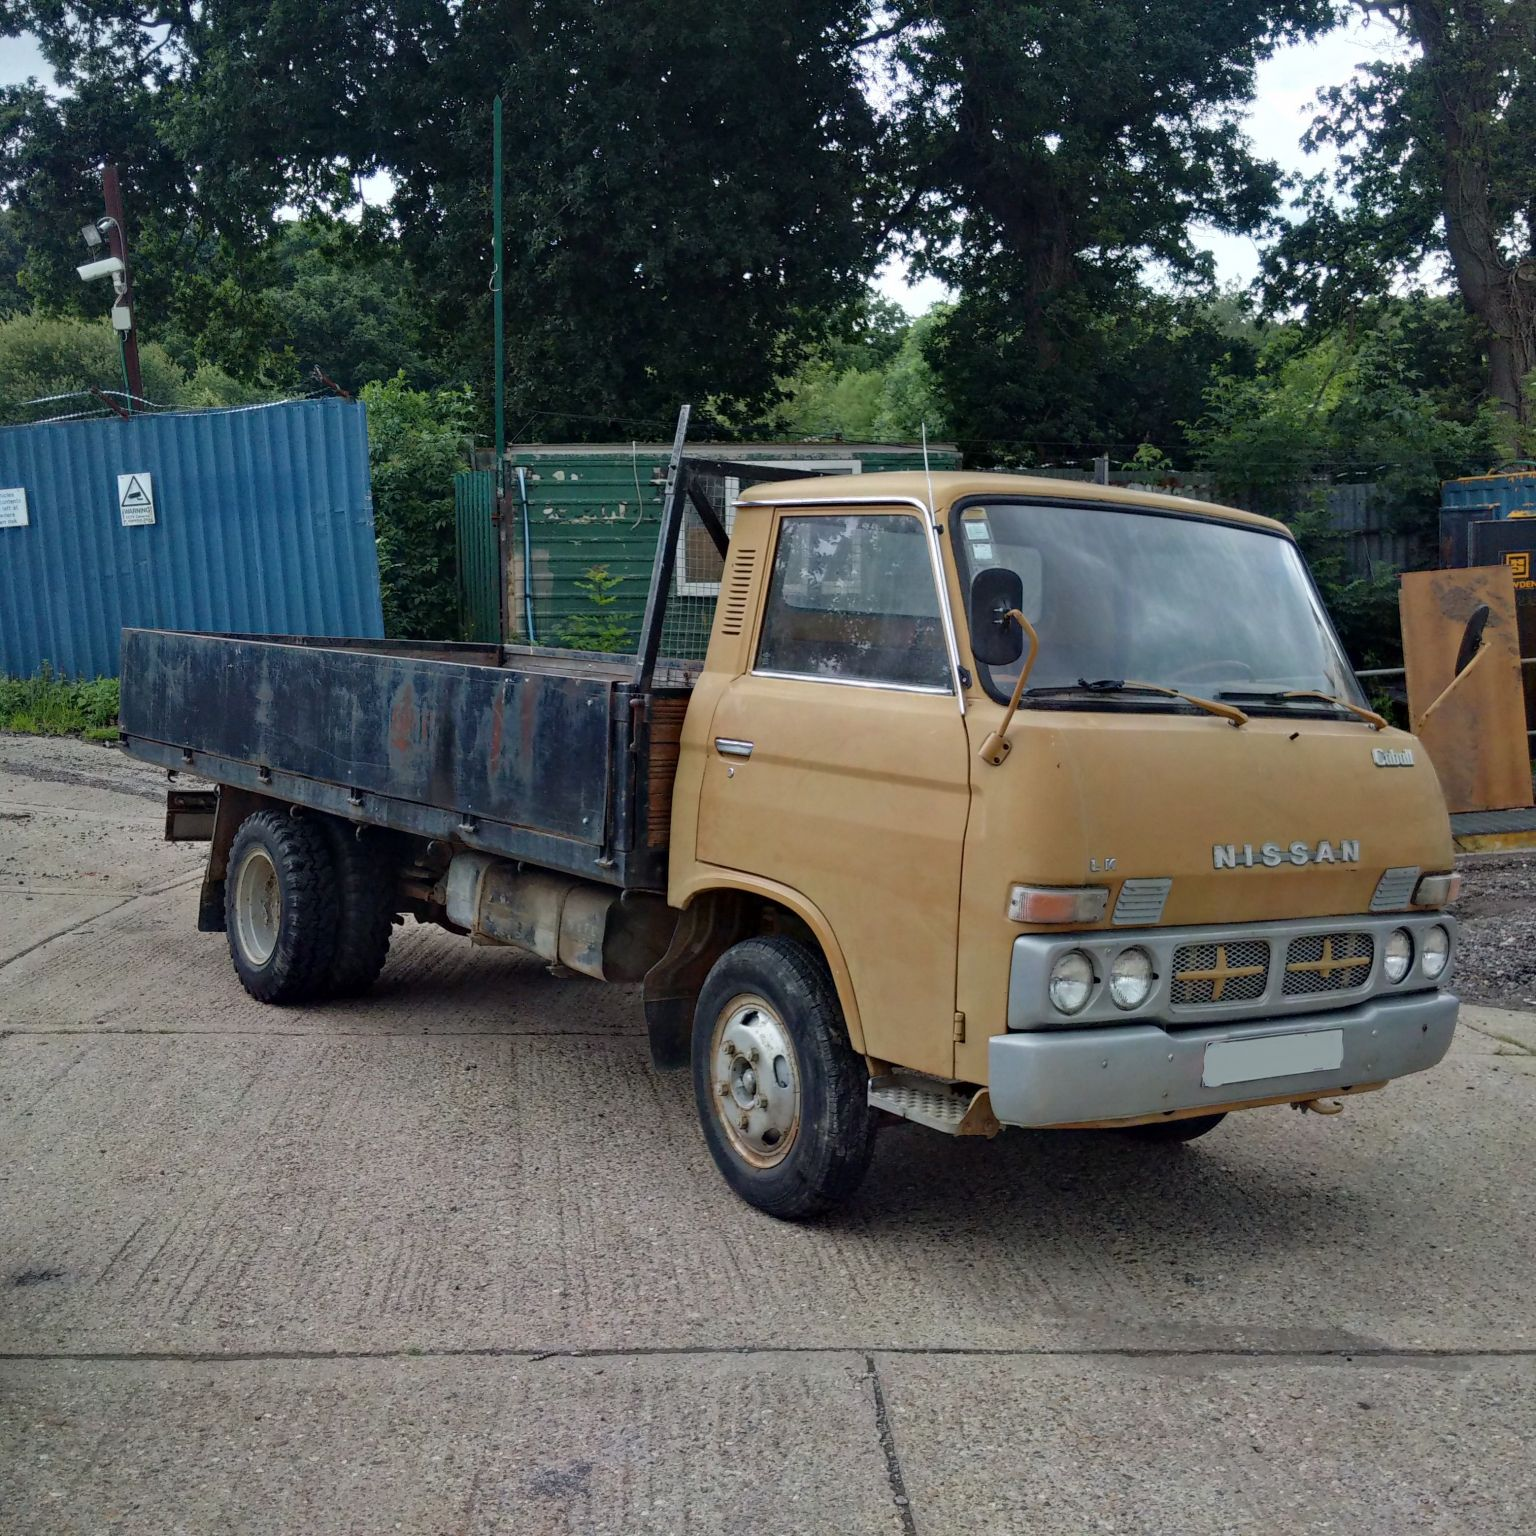 Left hand drive Nissan Caball 3.5 Ton 6 tyres truck. On springs suspension.